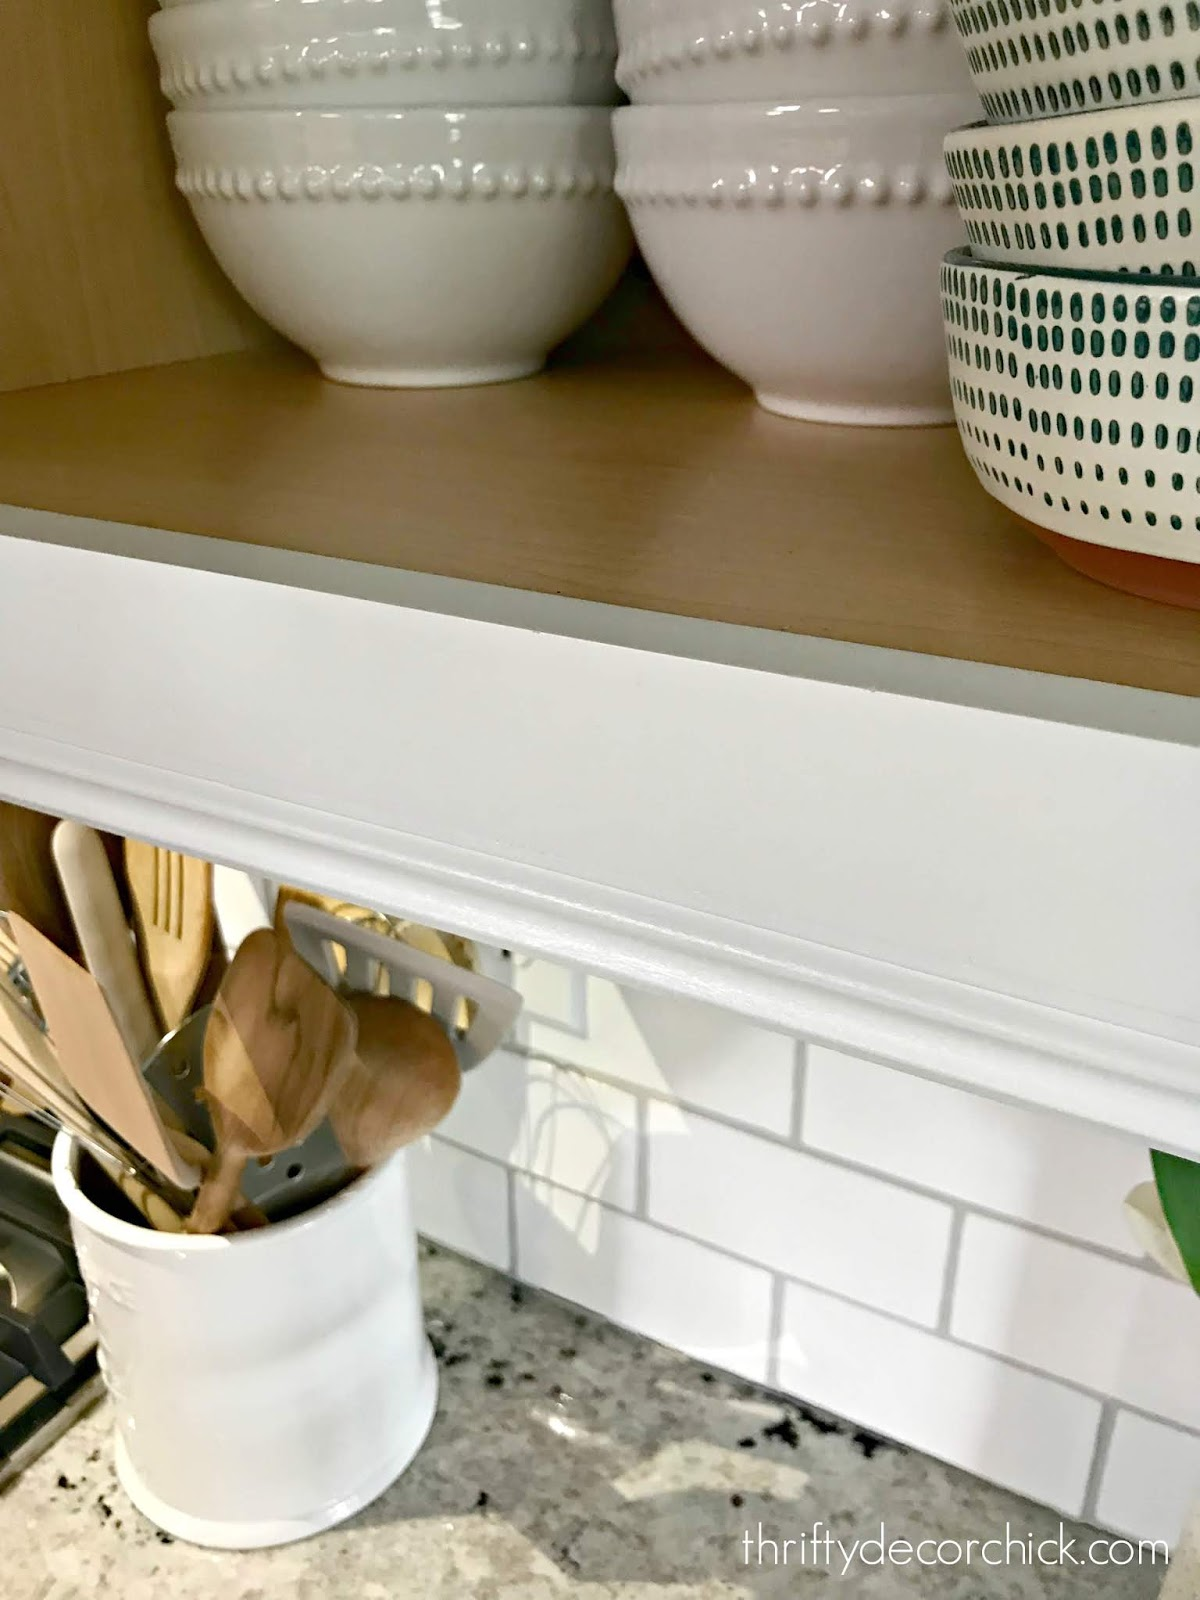 Decorative molding under cabinets